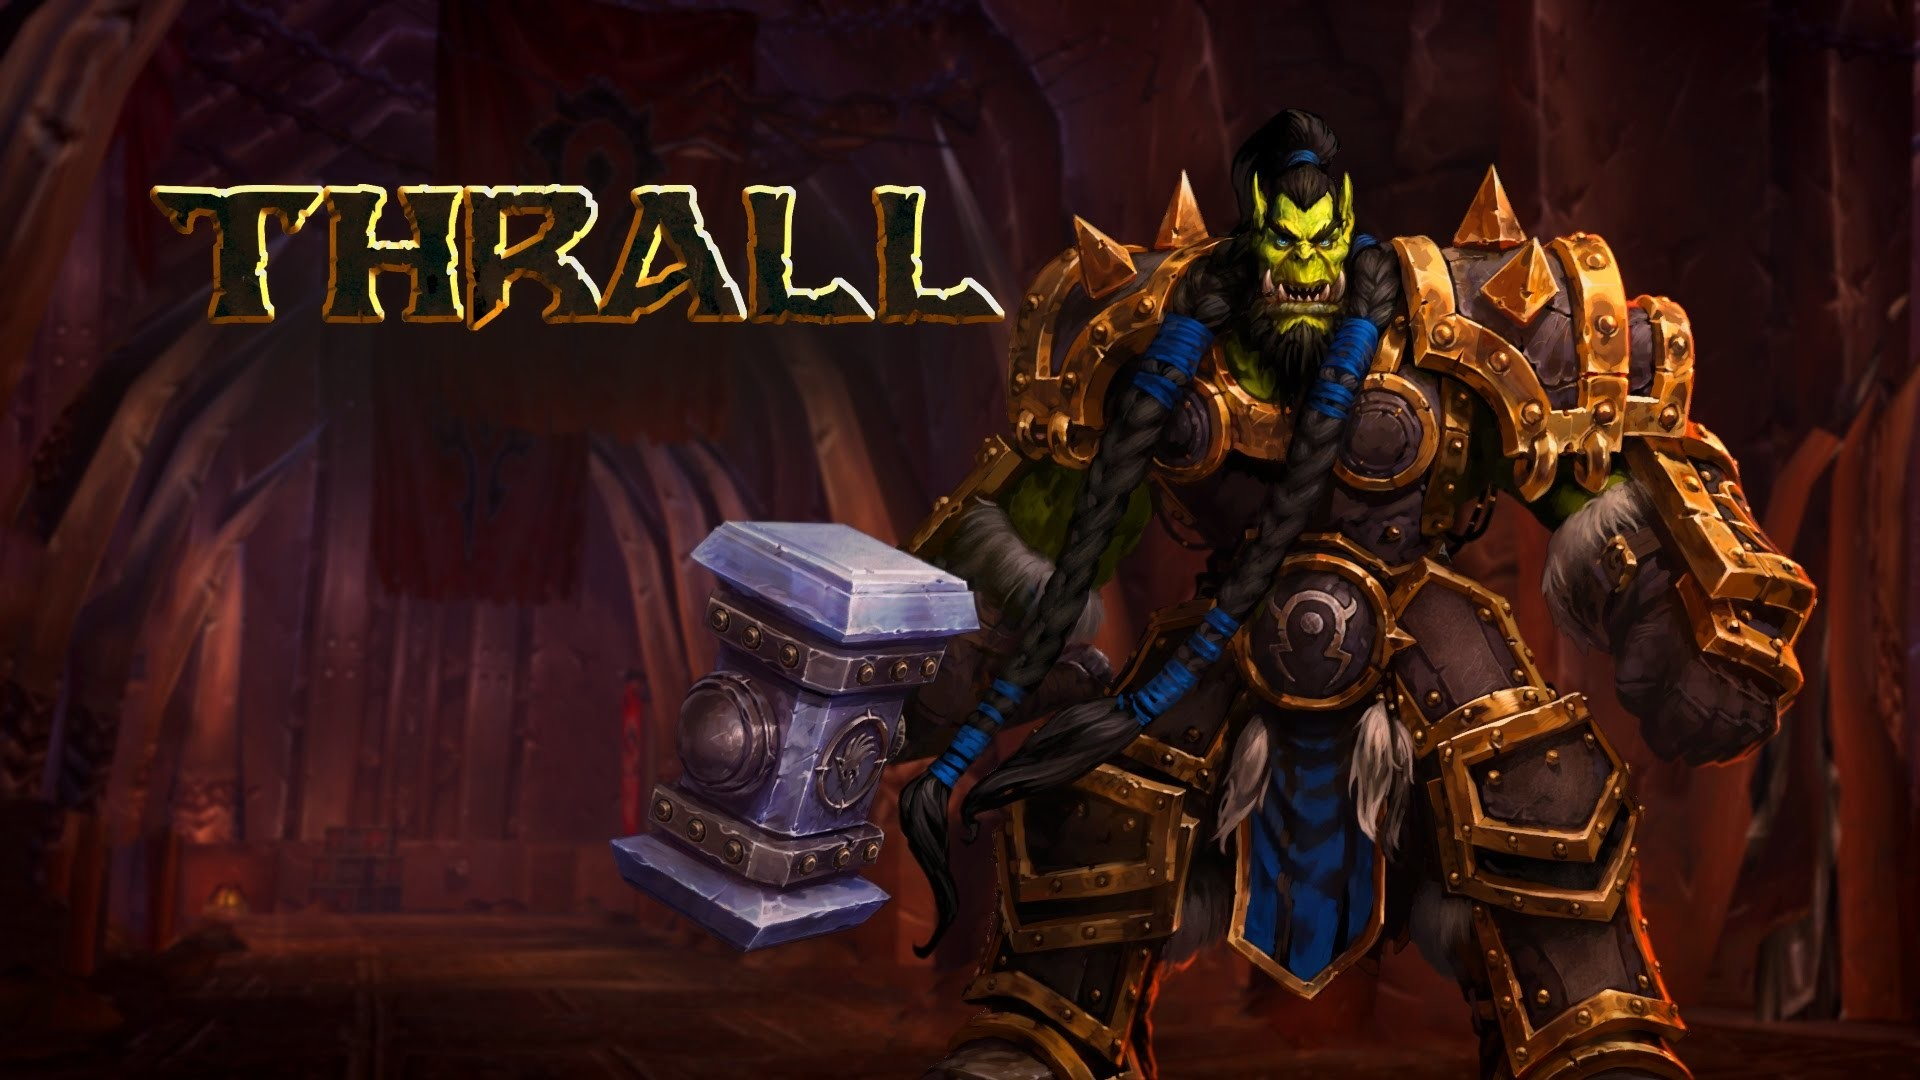 Thrall wallpapers 72 images - Heroes of the storm phone wallpaper ...